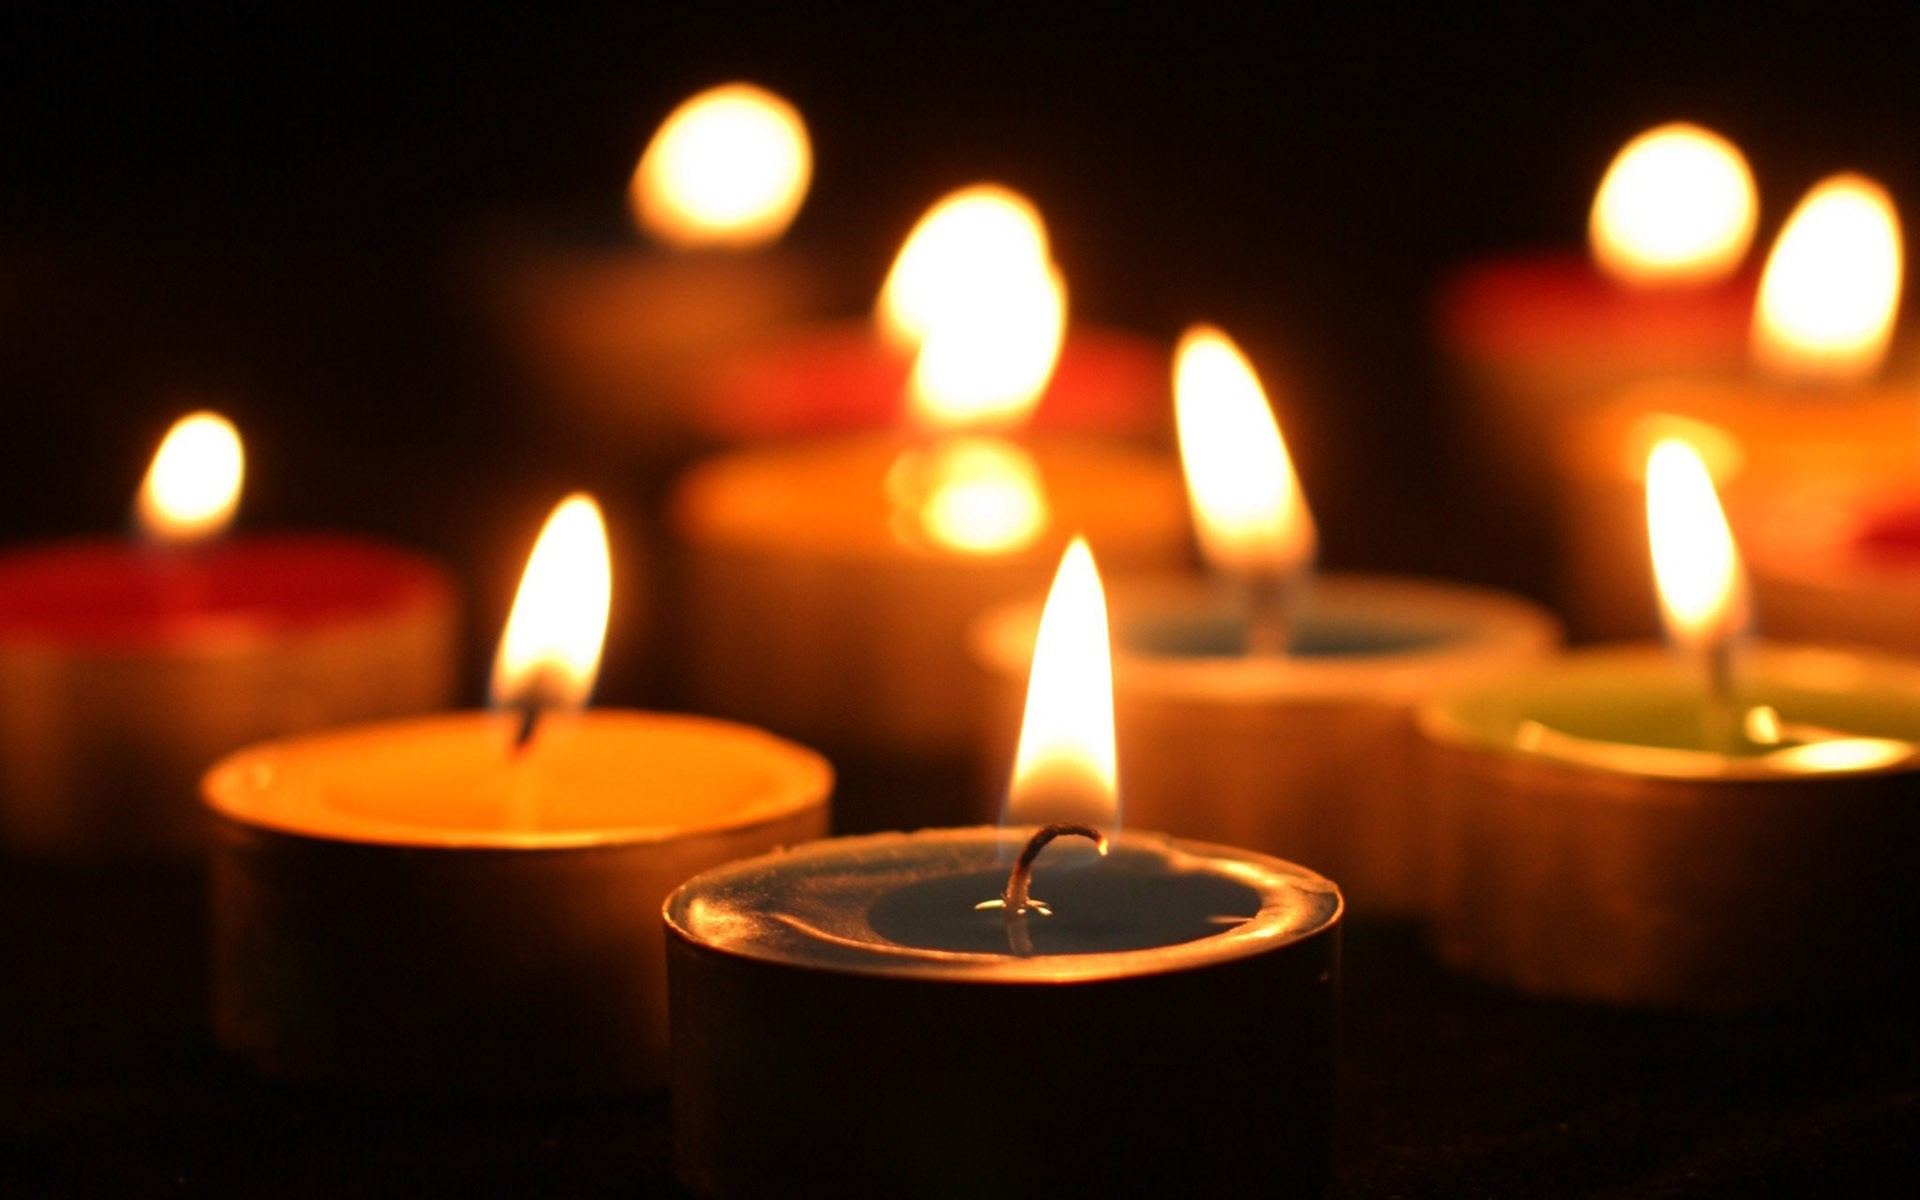 Candle light at night DSLR effect HD wallpapers